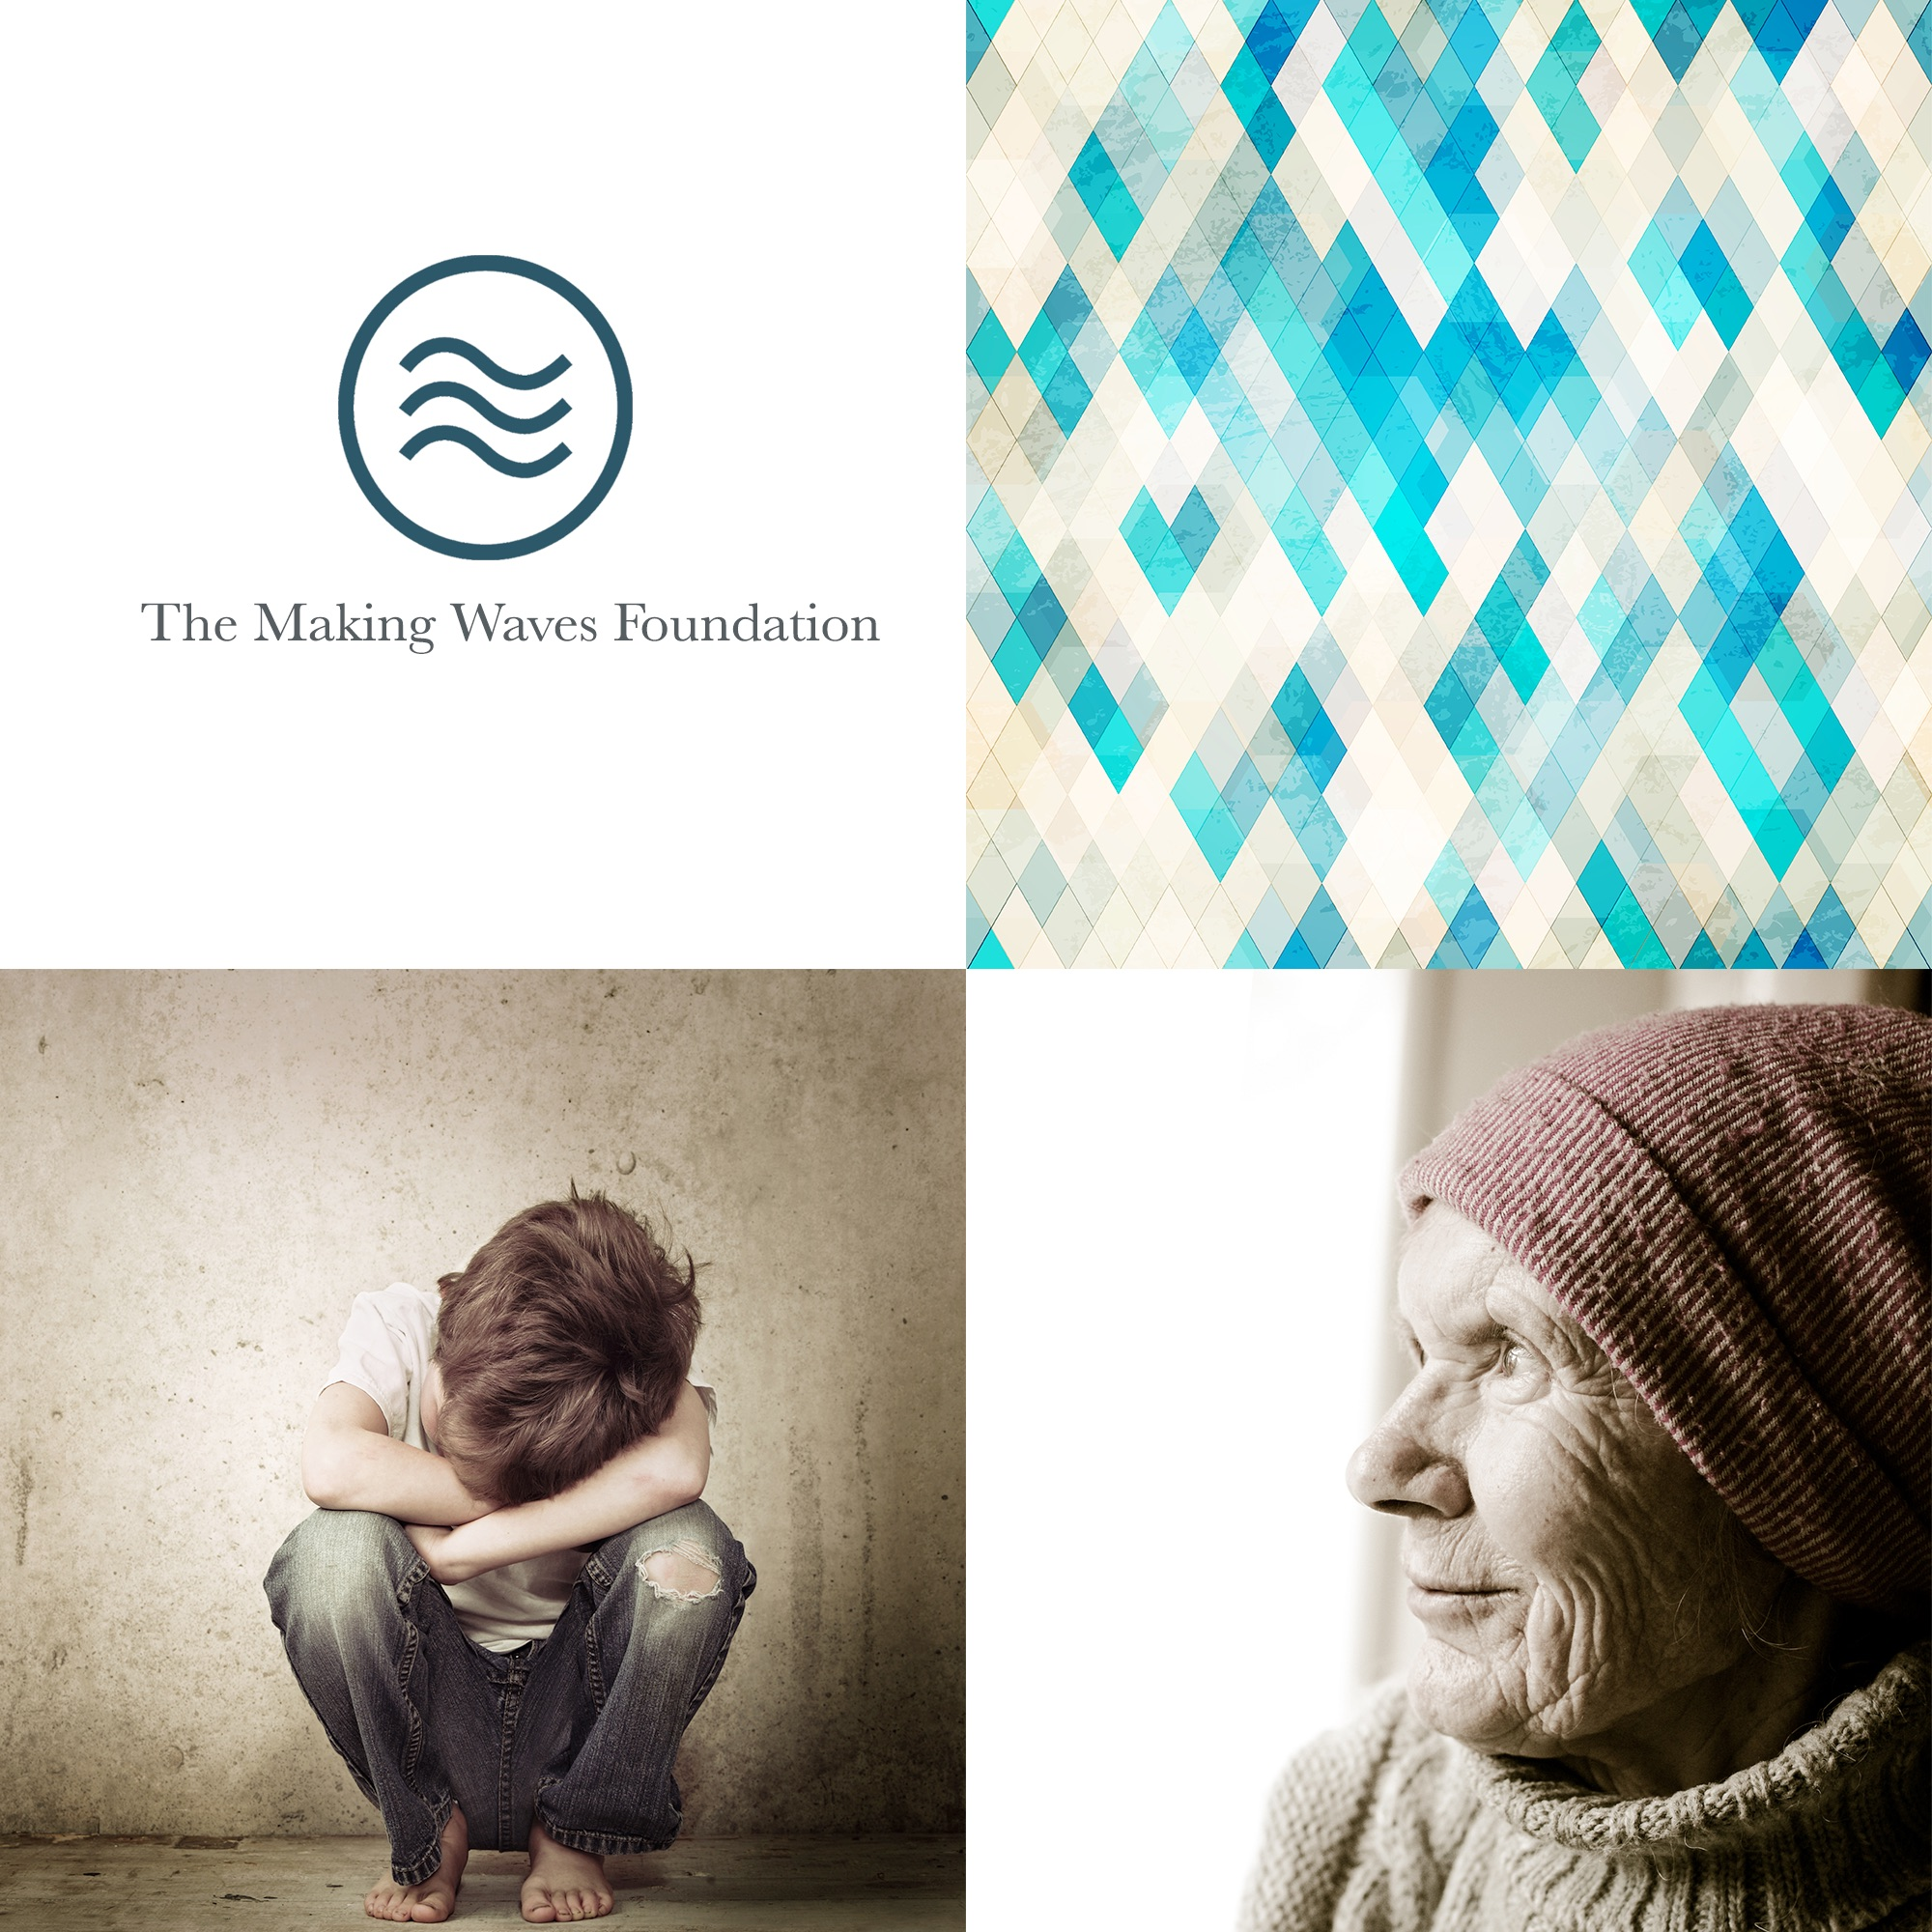 The Making Waves Foundation